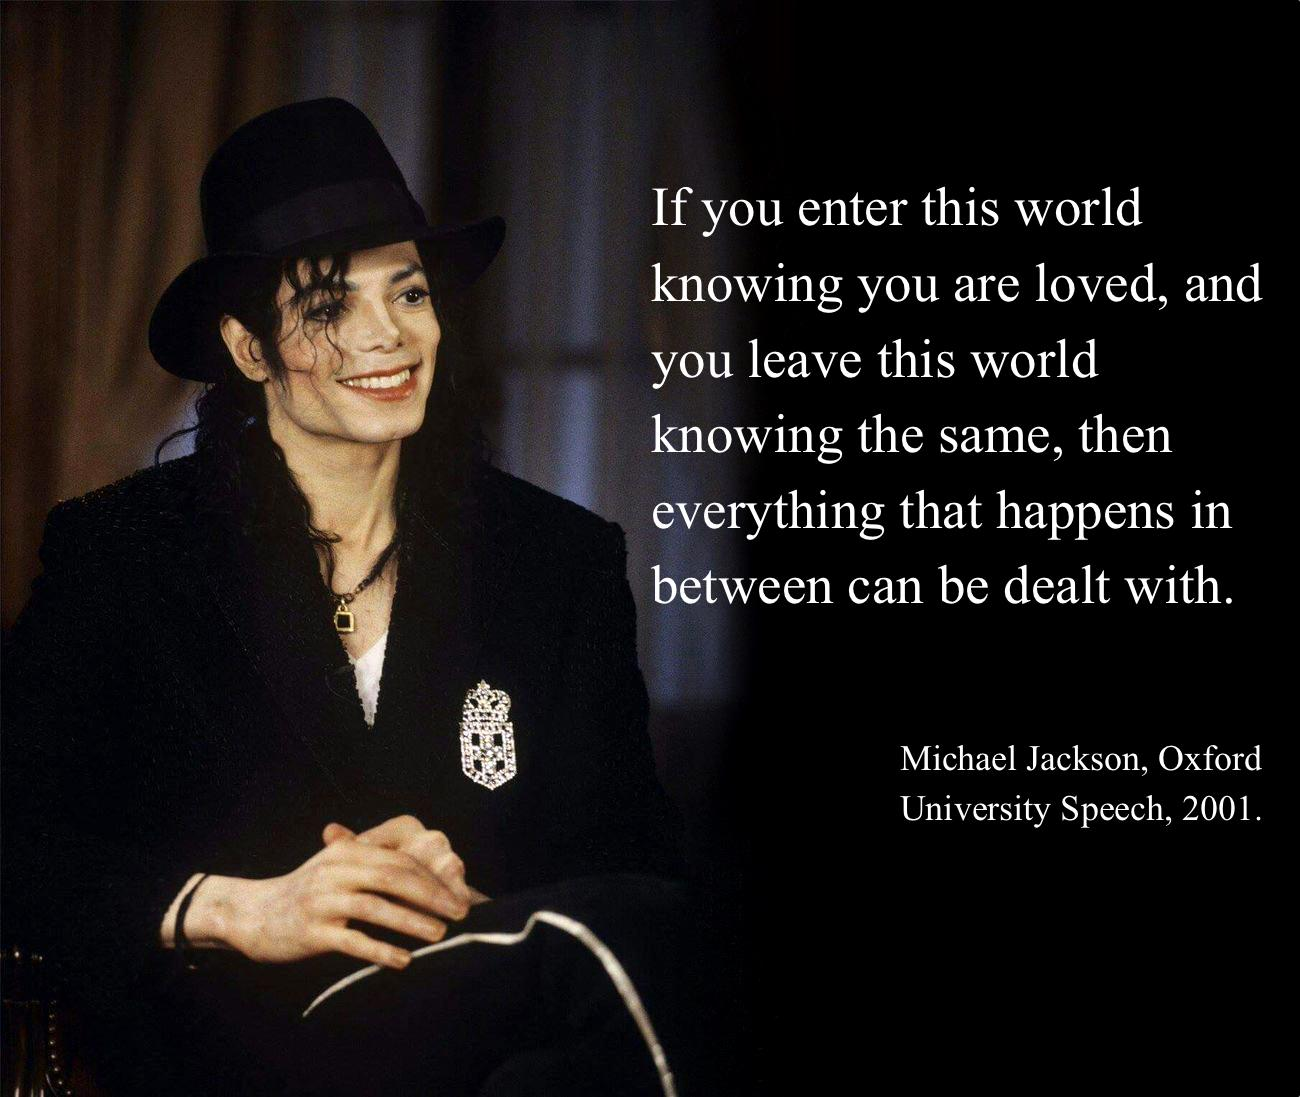 """If you enter this world knowing you are loved, and you leave this world knowing the same, then everything that happens in between can be dealt with."" – Michael Jackson [1300 x 1097]"